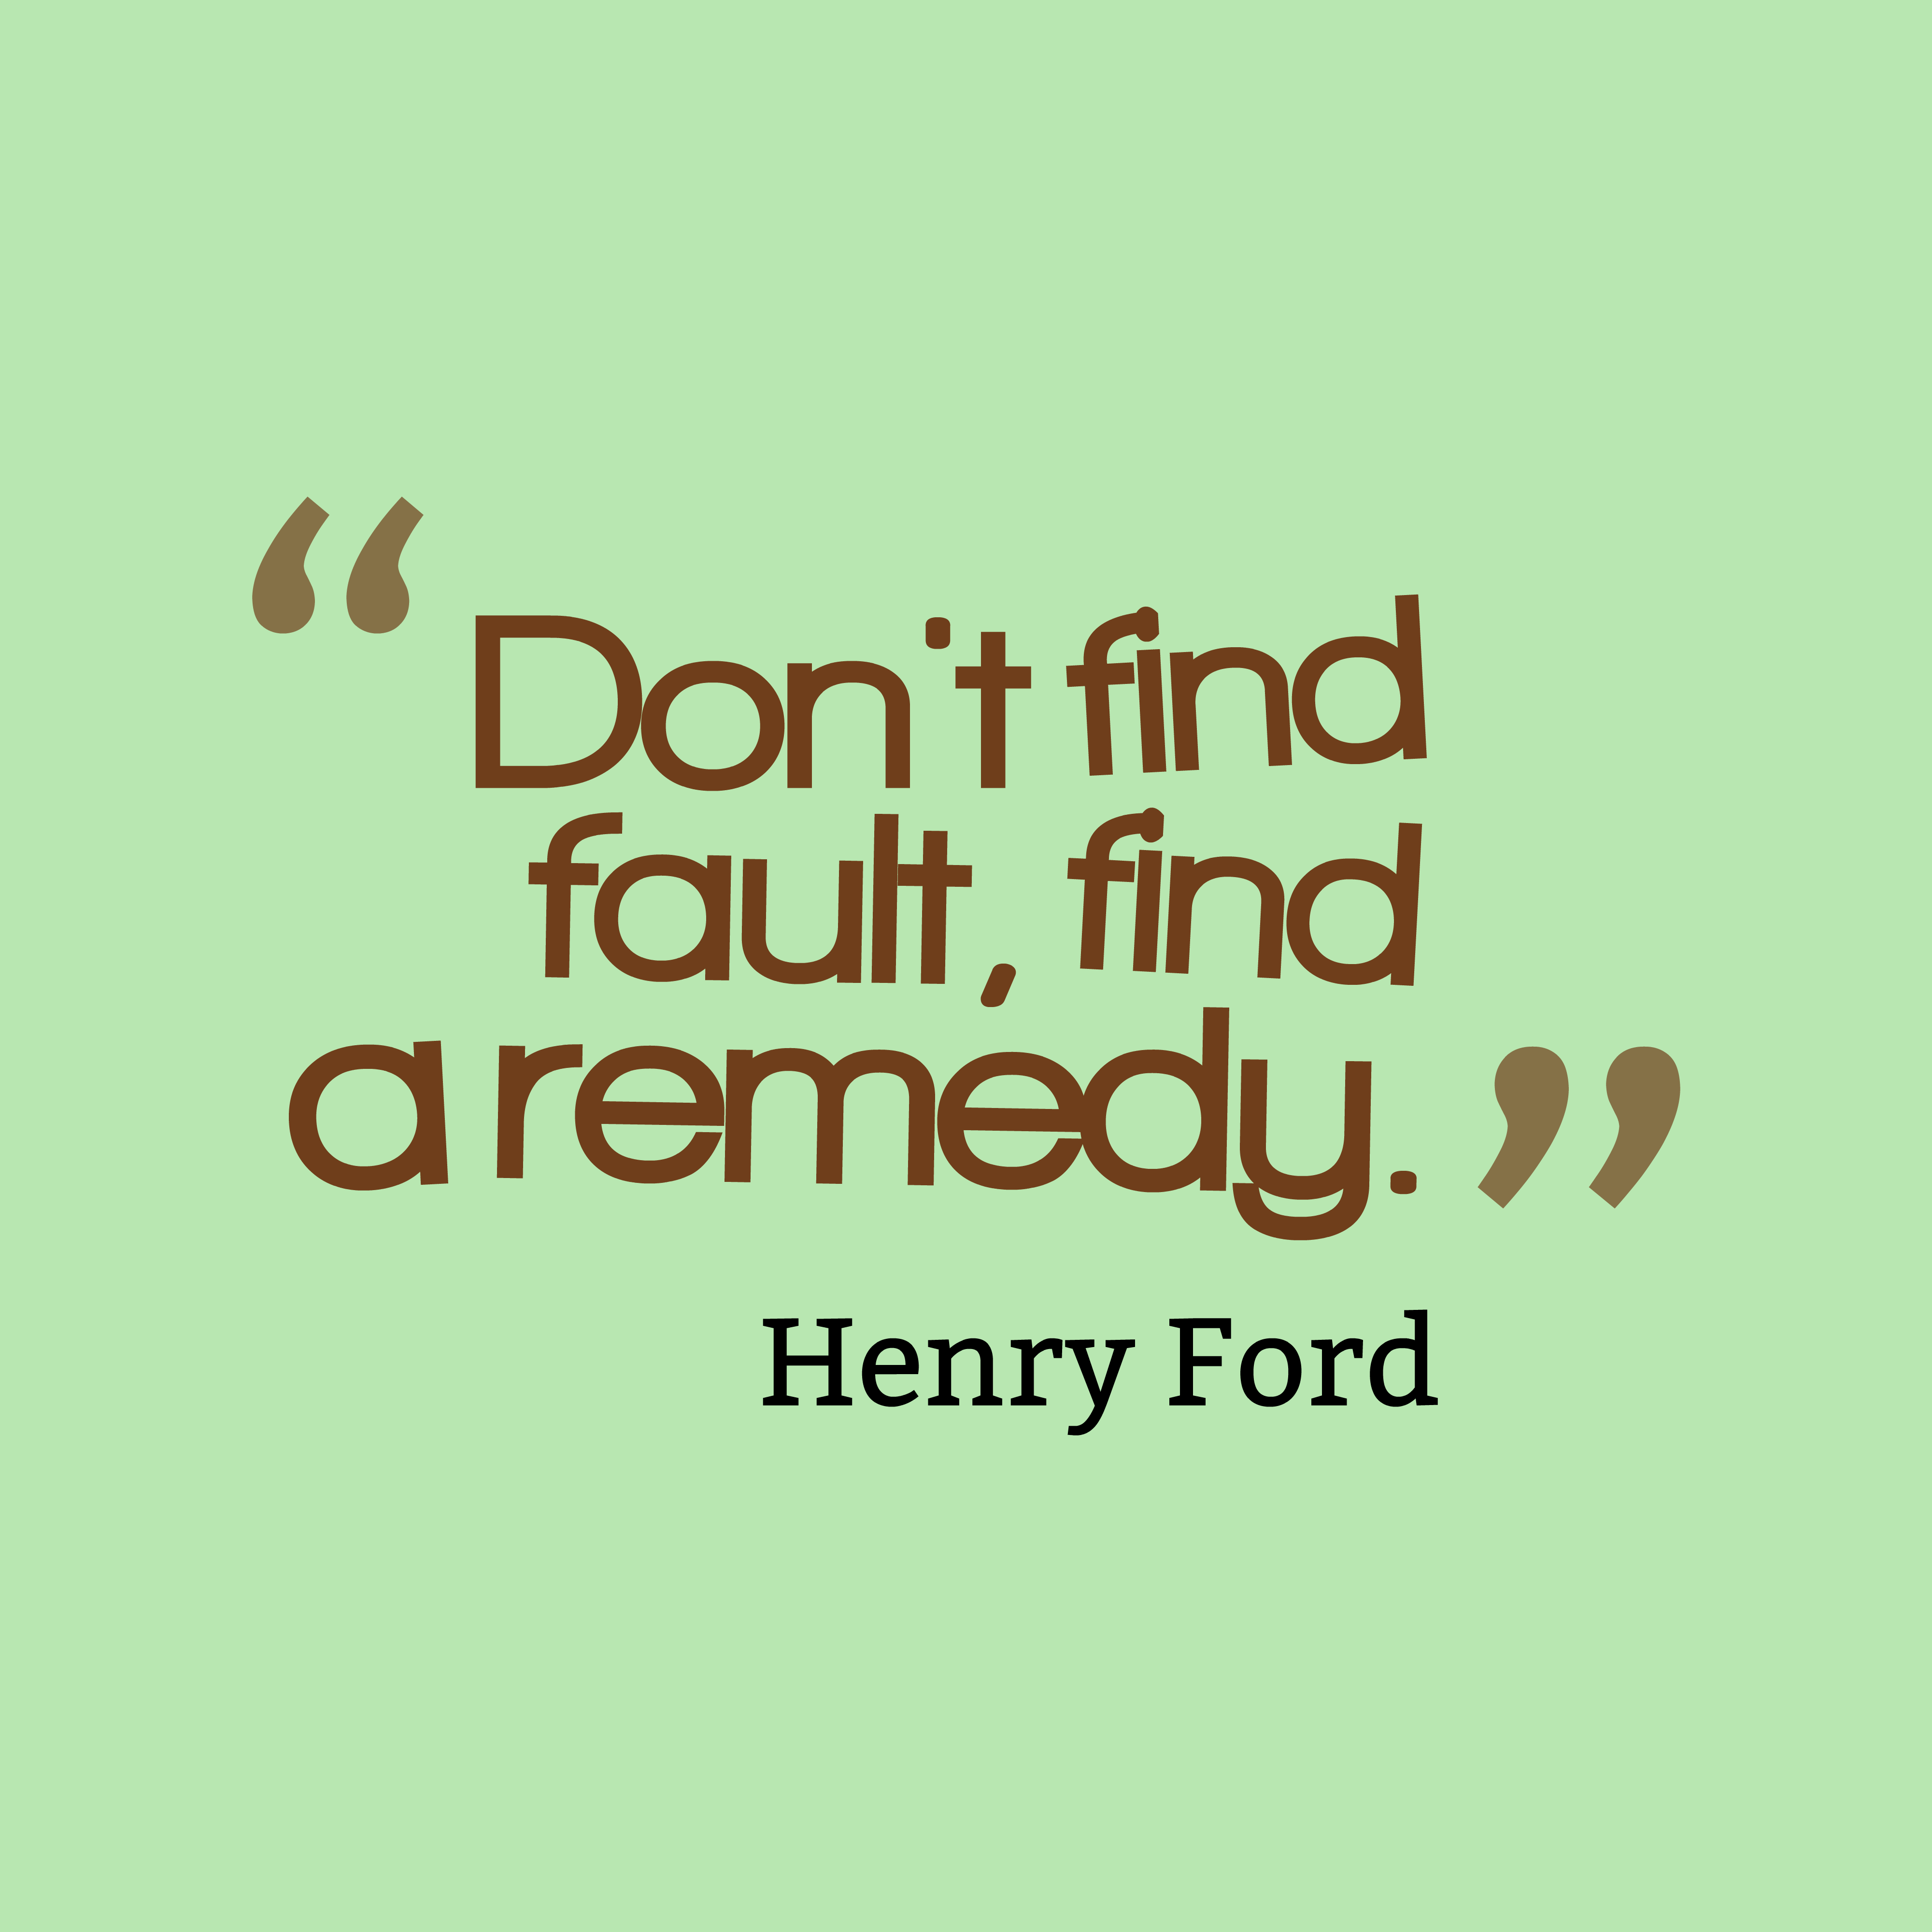 Quotes image of Don't find fault, find a remedy.